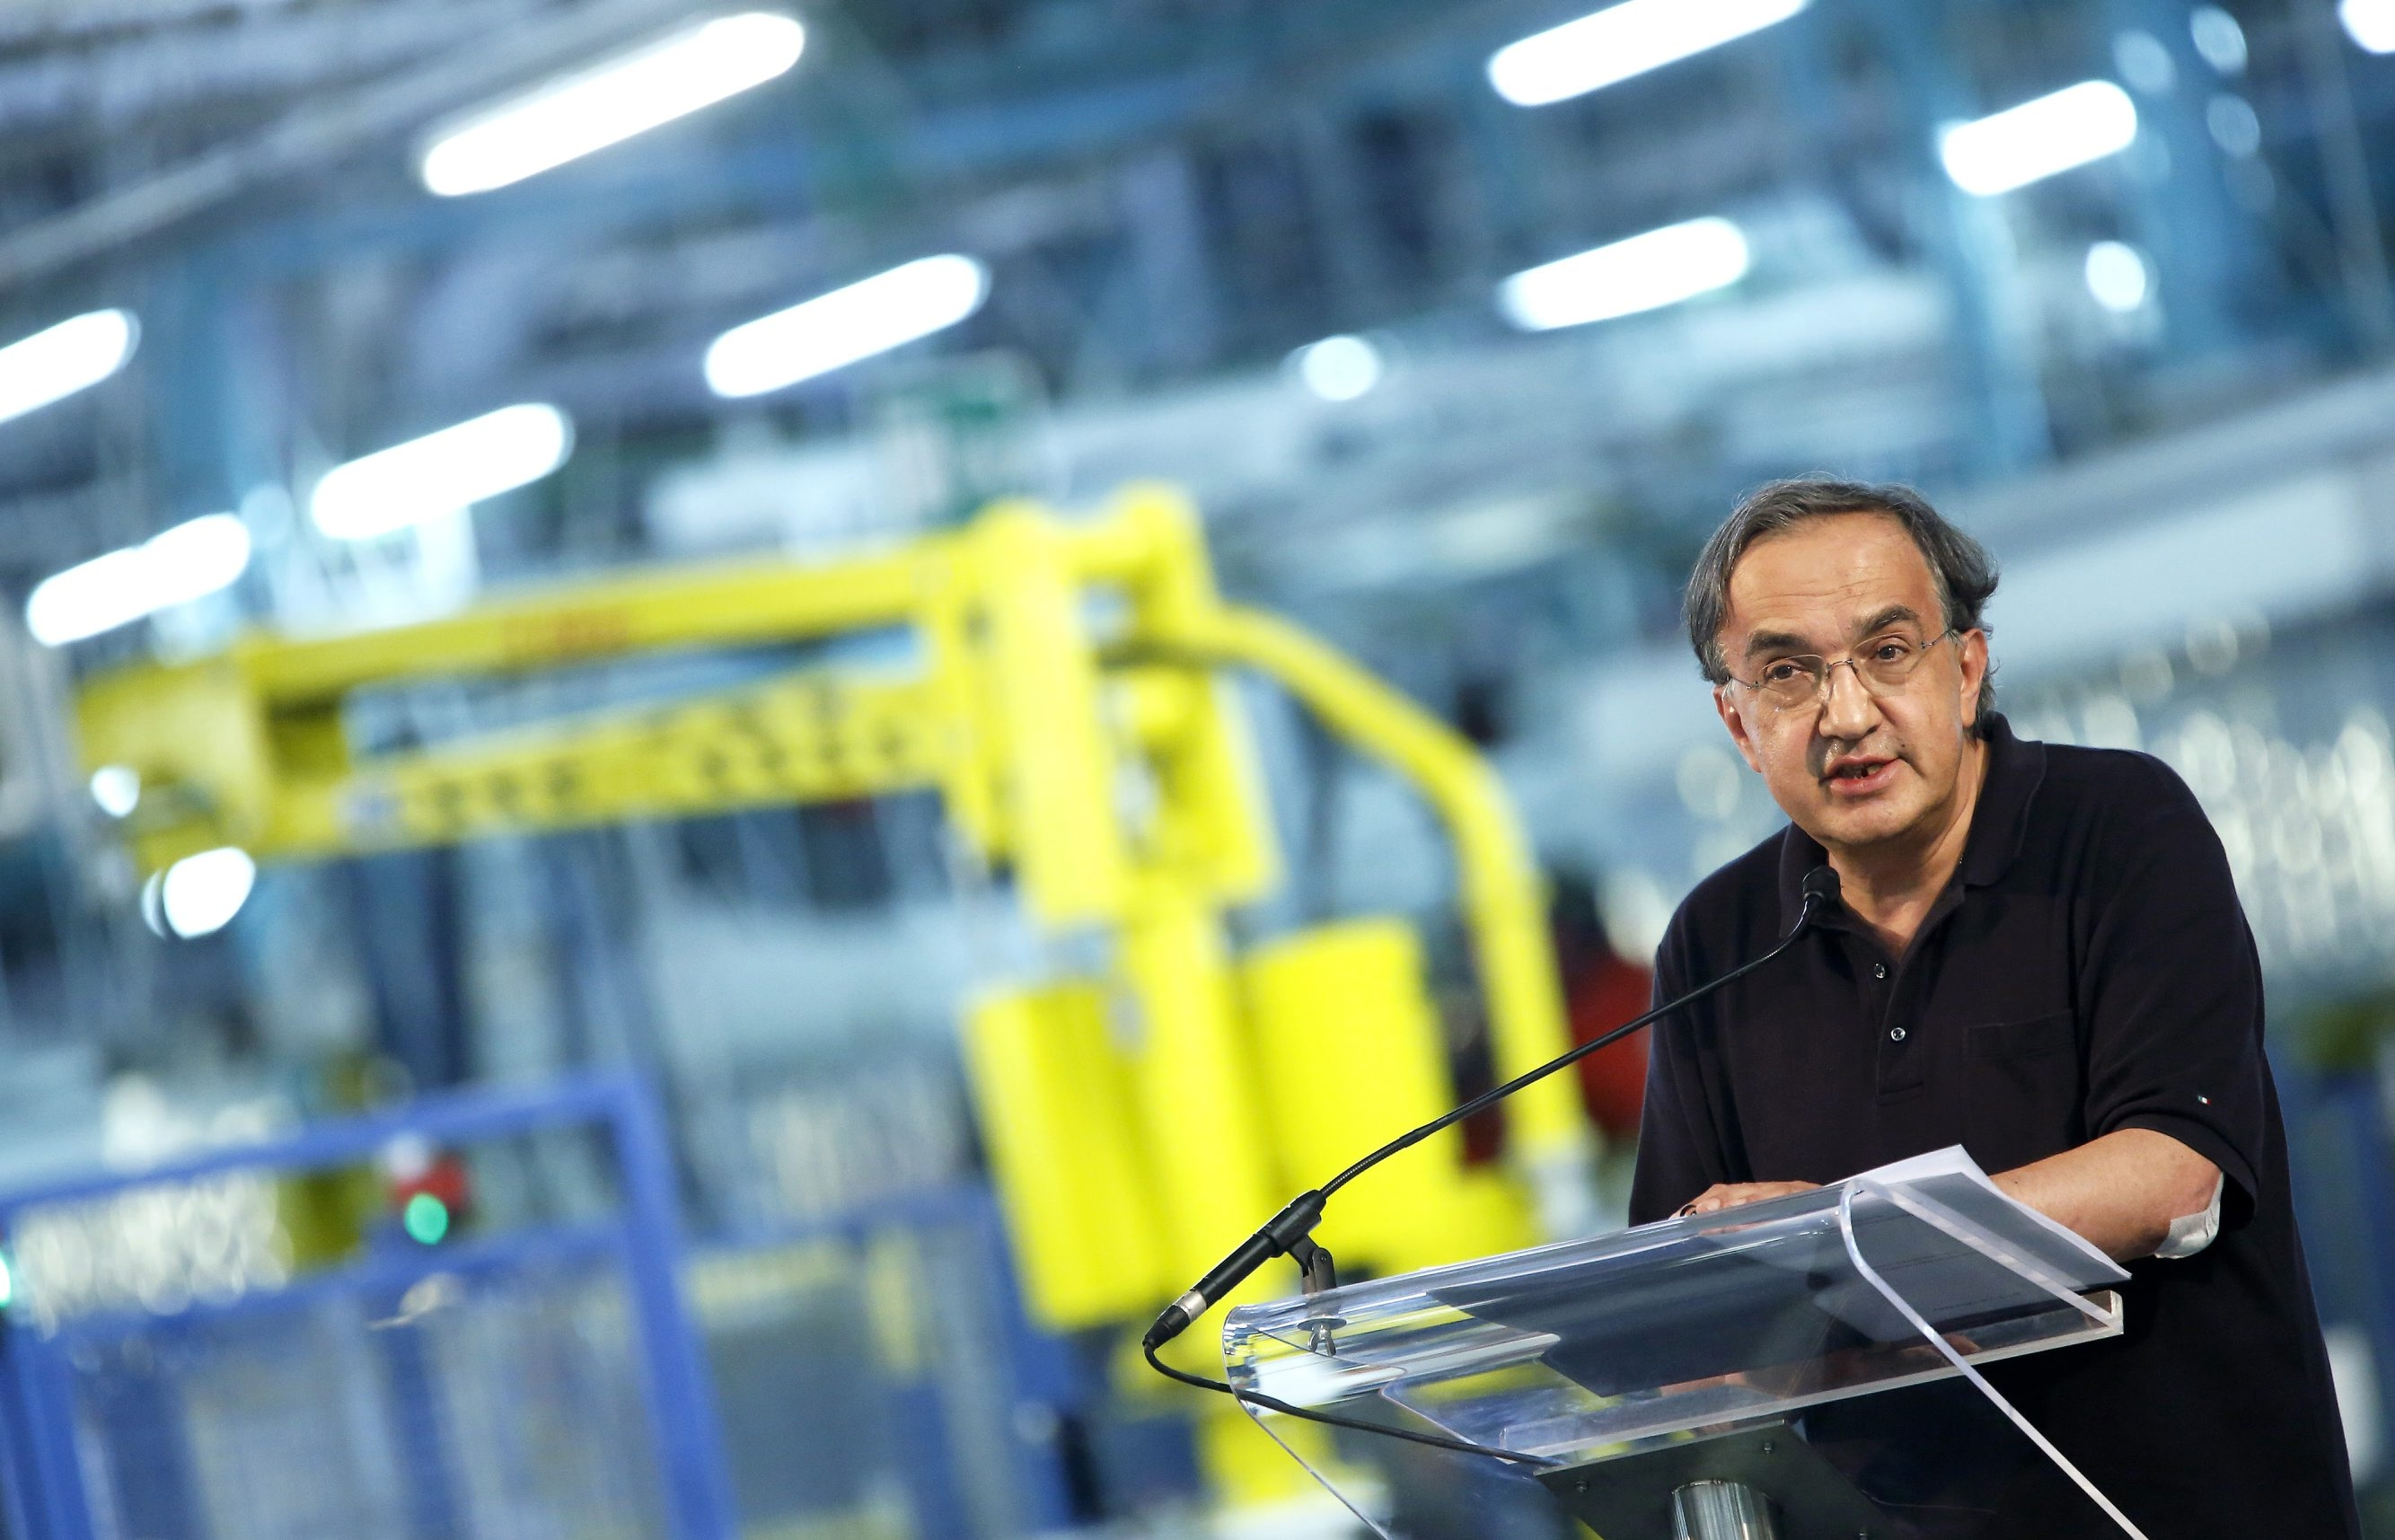 Sergio Marchionne, chief executive officer of Fiat SpA, speaks to employees on the production line at the SevelSud van manufacturing plant in Val Di Sangro, near Atessa, Italy, in July.  Marchionne has struck a deal to buy a 41.5 percent stake in Chrysler held by the UAW, giving Fiat total control of the No. 3 U.S. automaker.